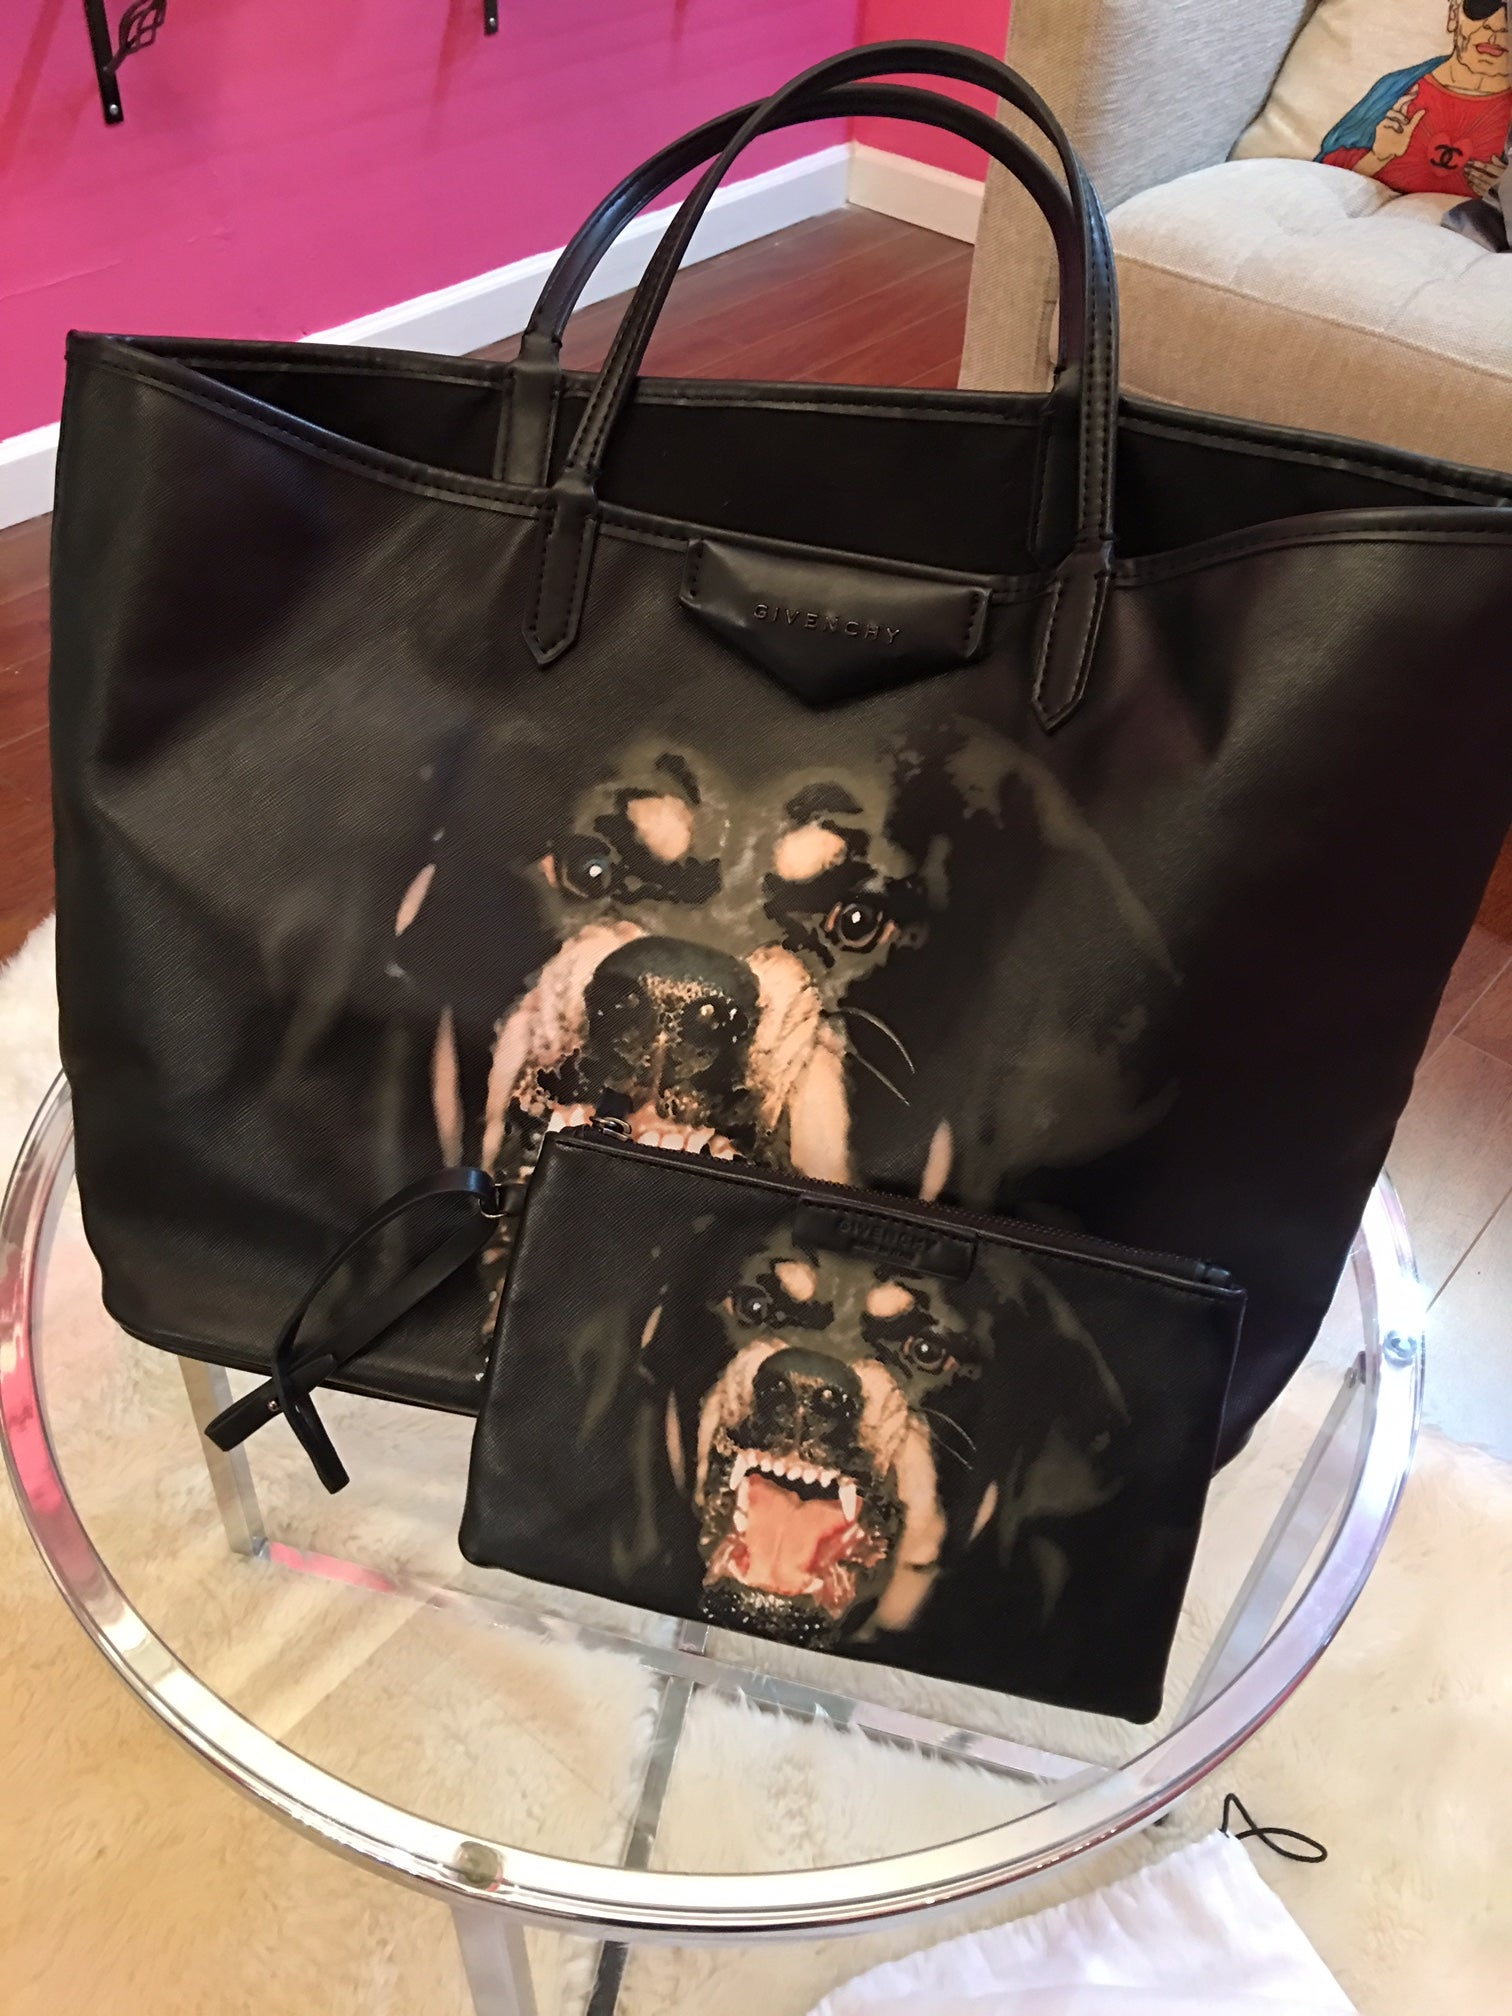 d08a3ca2ed Givenchy large Rottweiler tote with pouch – Beccas Bags Boutique